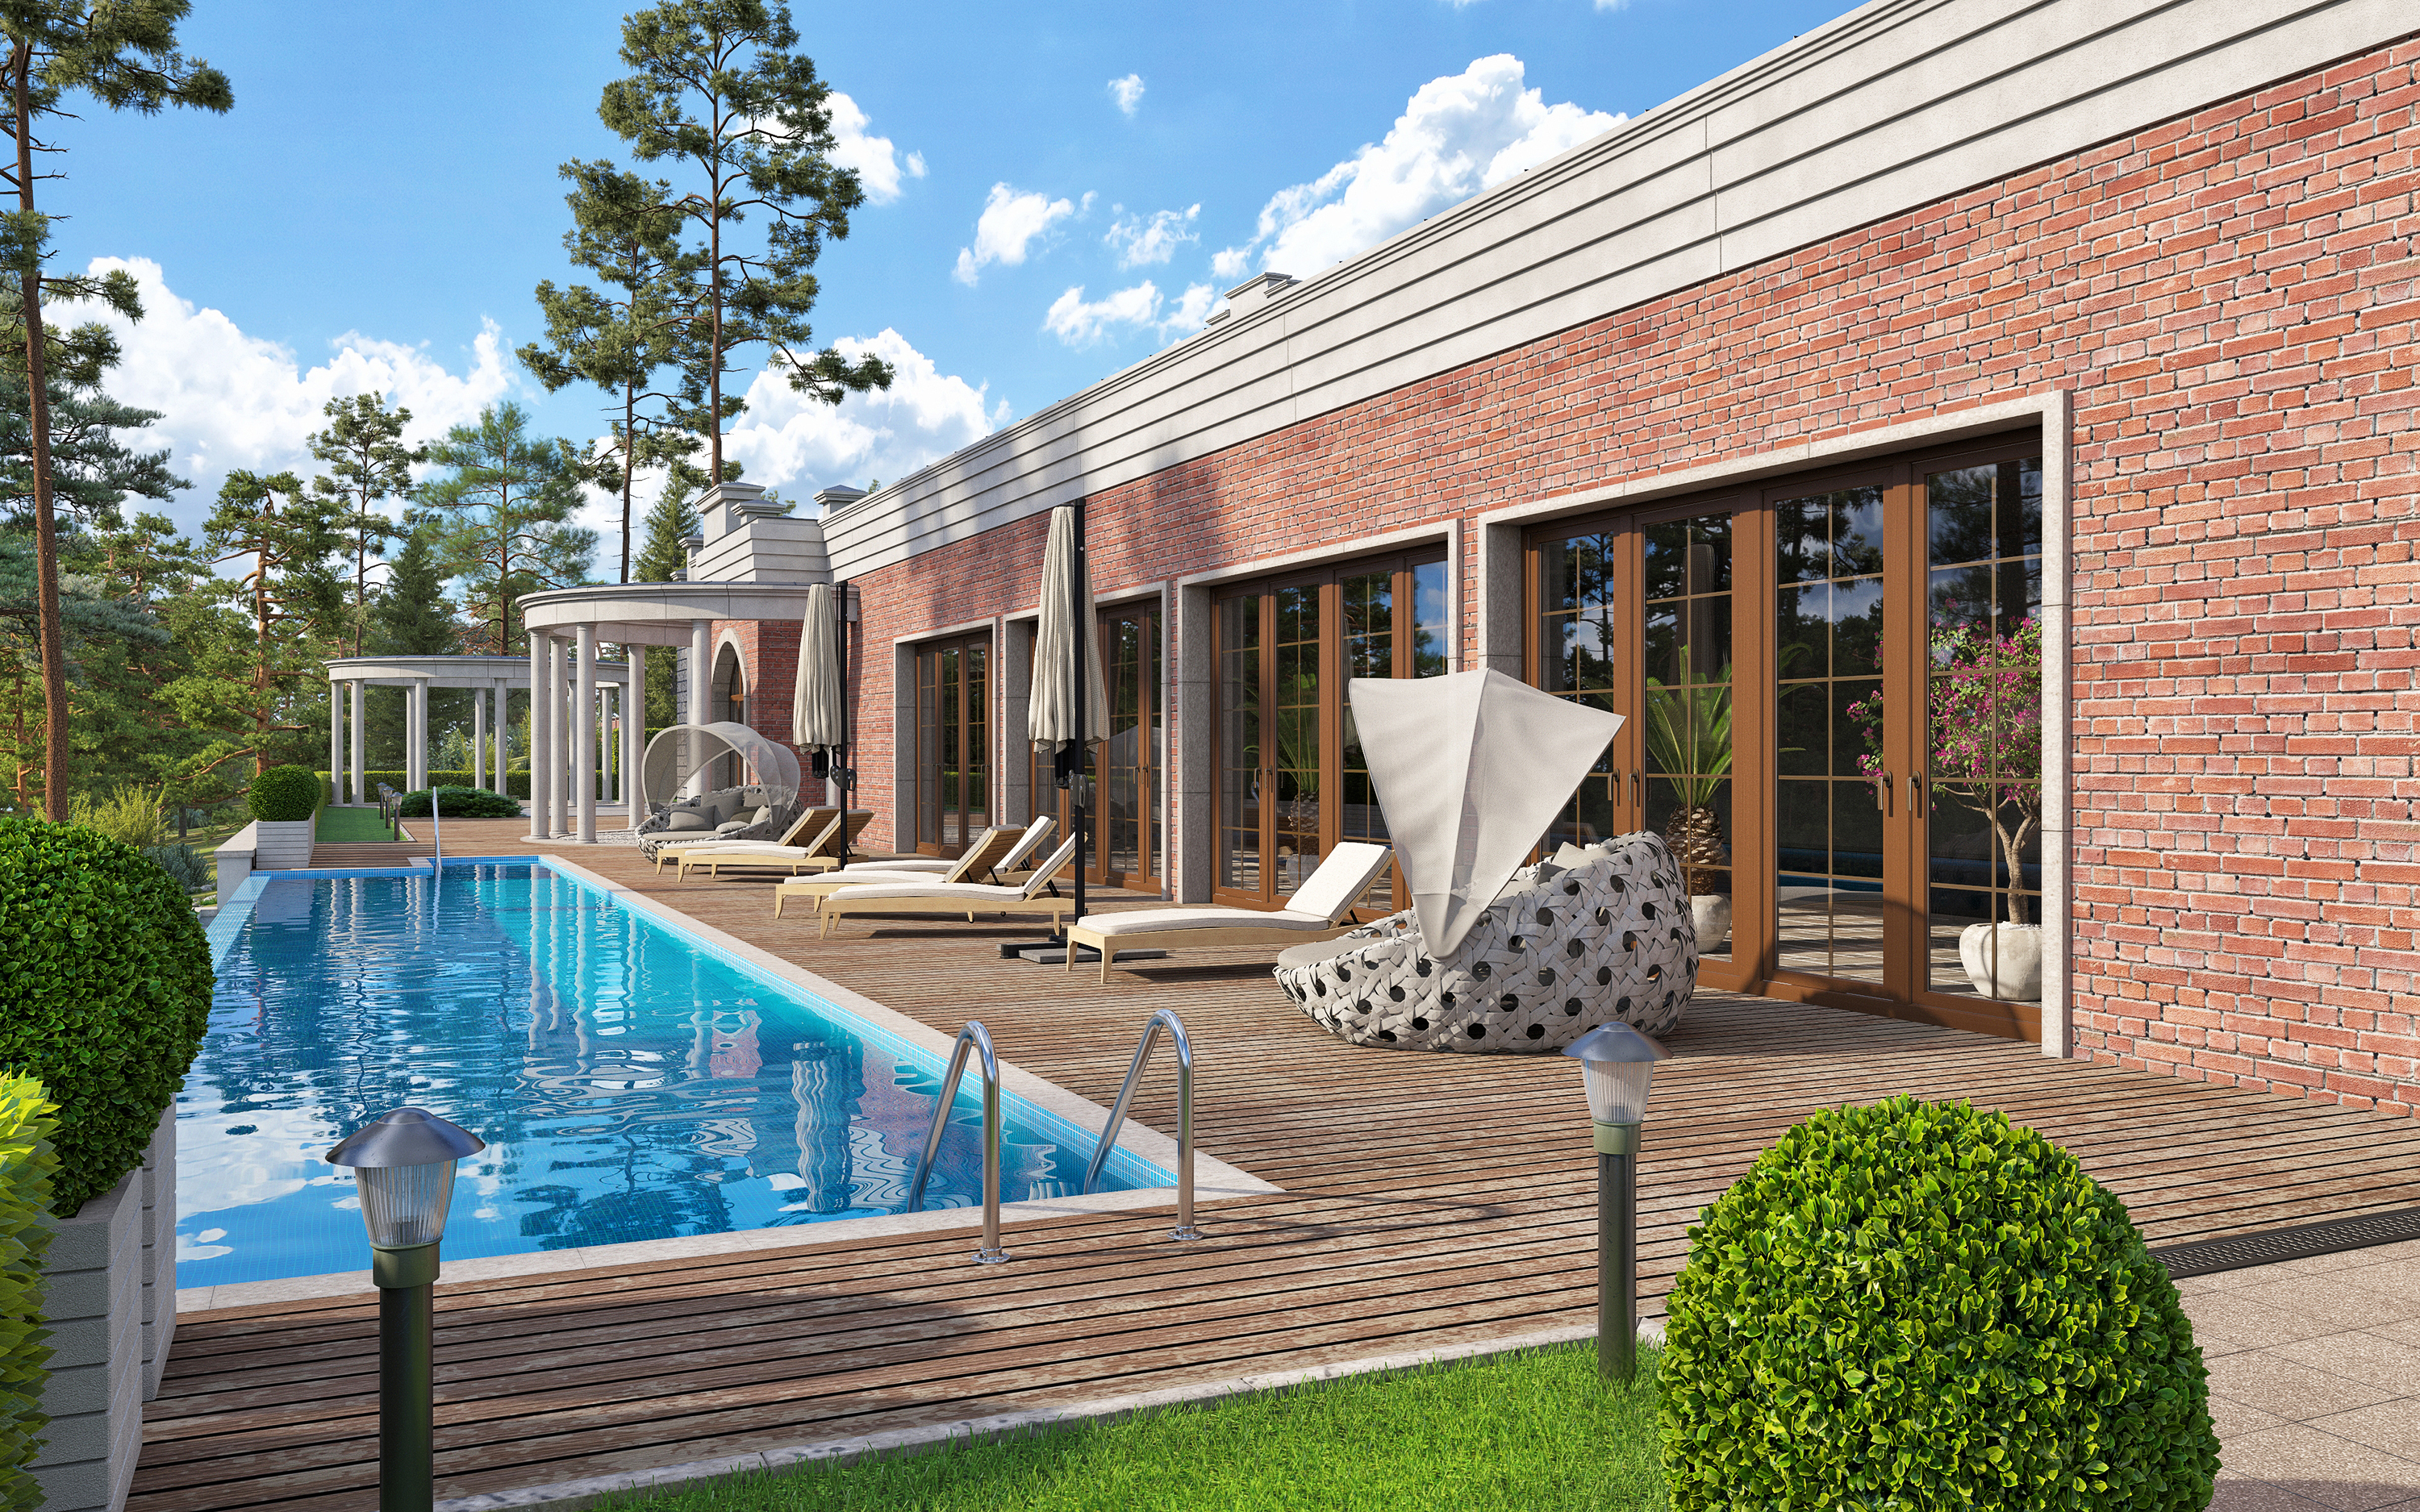 Private boutique hotel in a pine forest. in 3d max corona render image